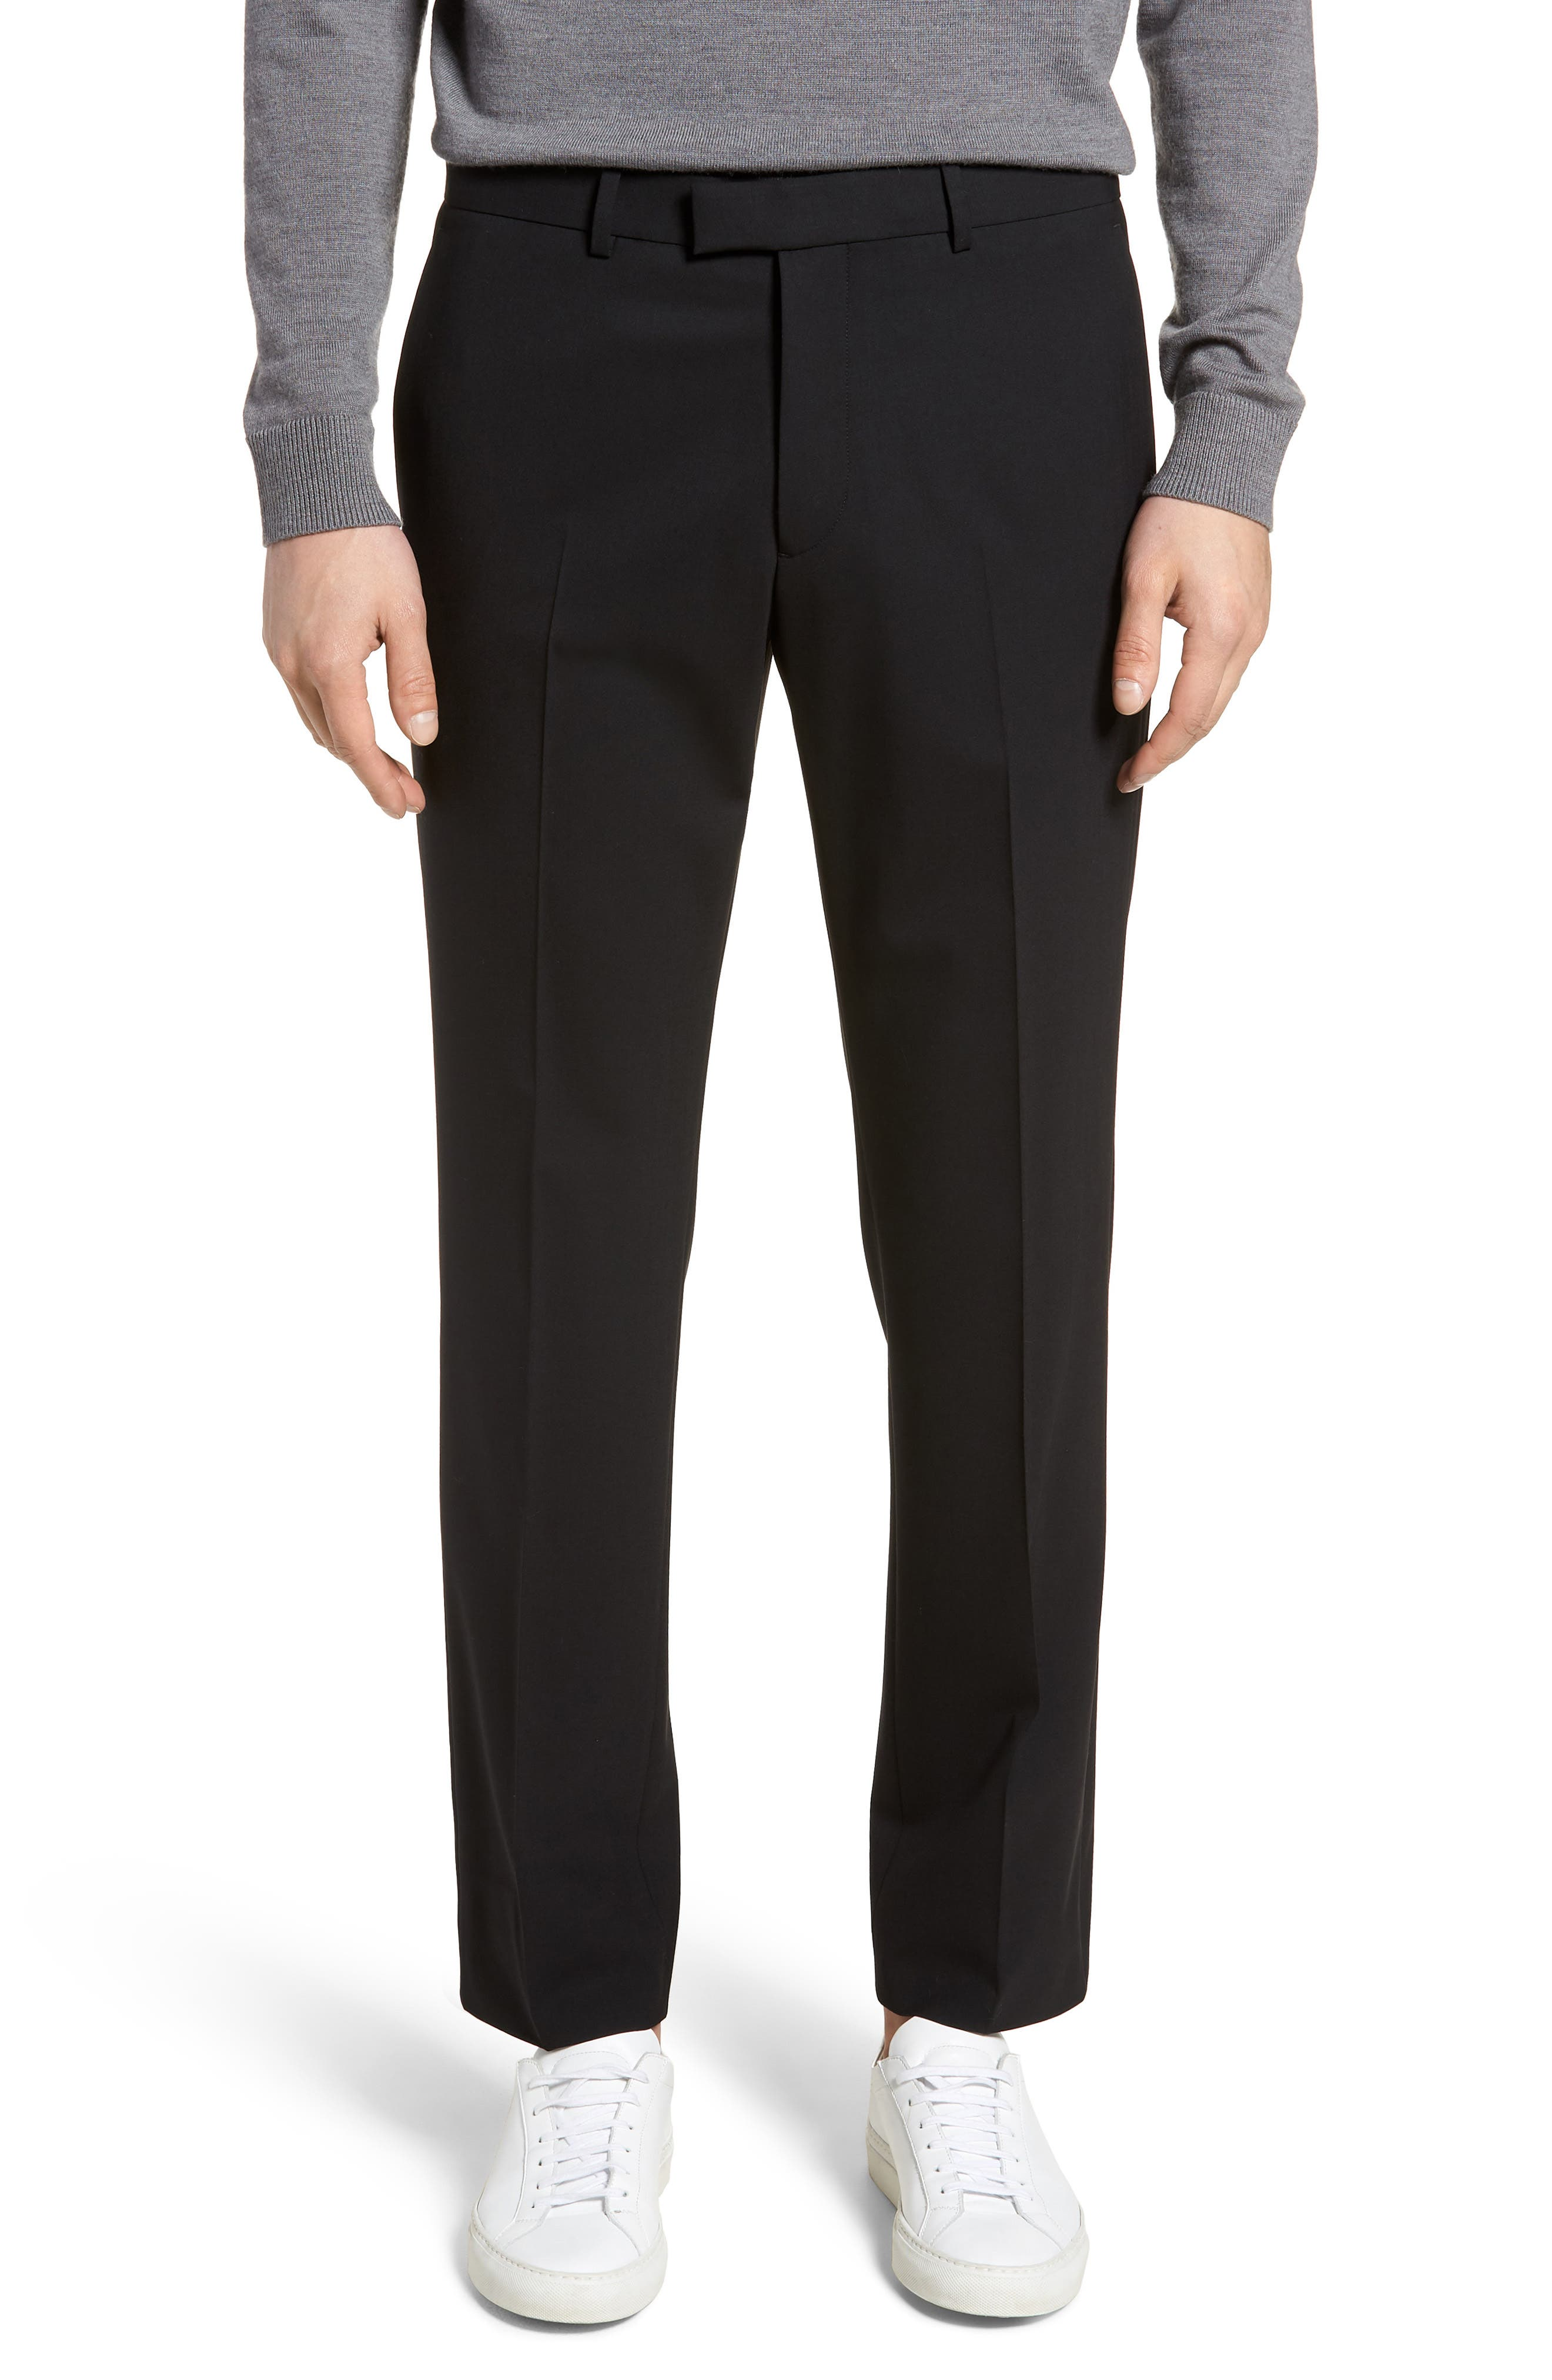 Marlo Flat Front Stretch Wool Pants,                         Main,                         color, Black